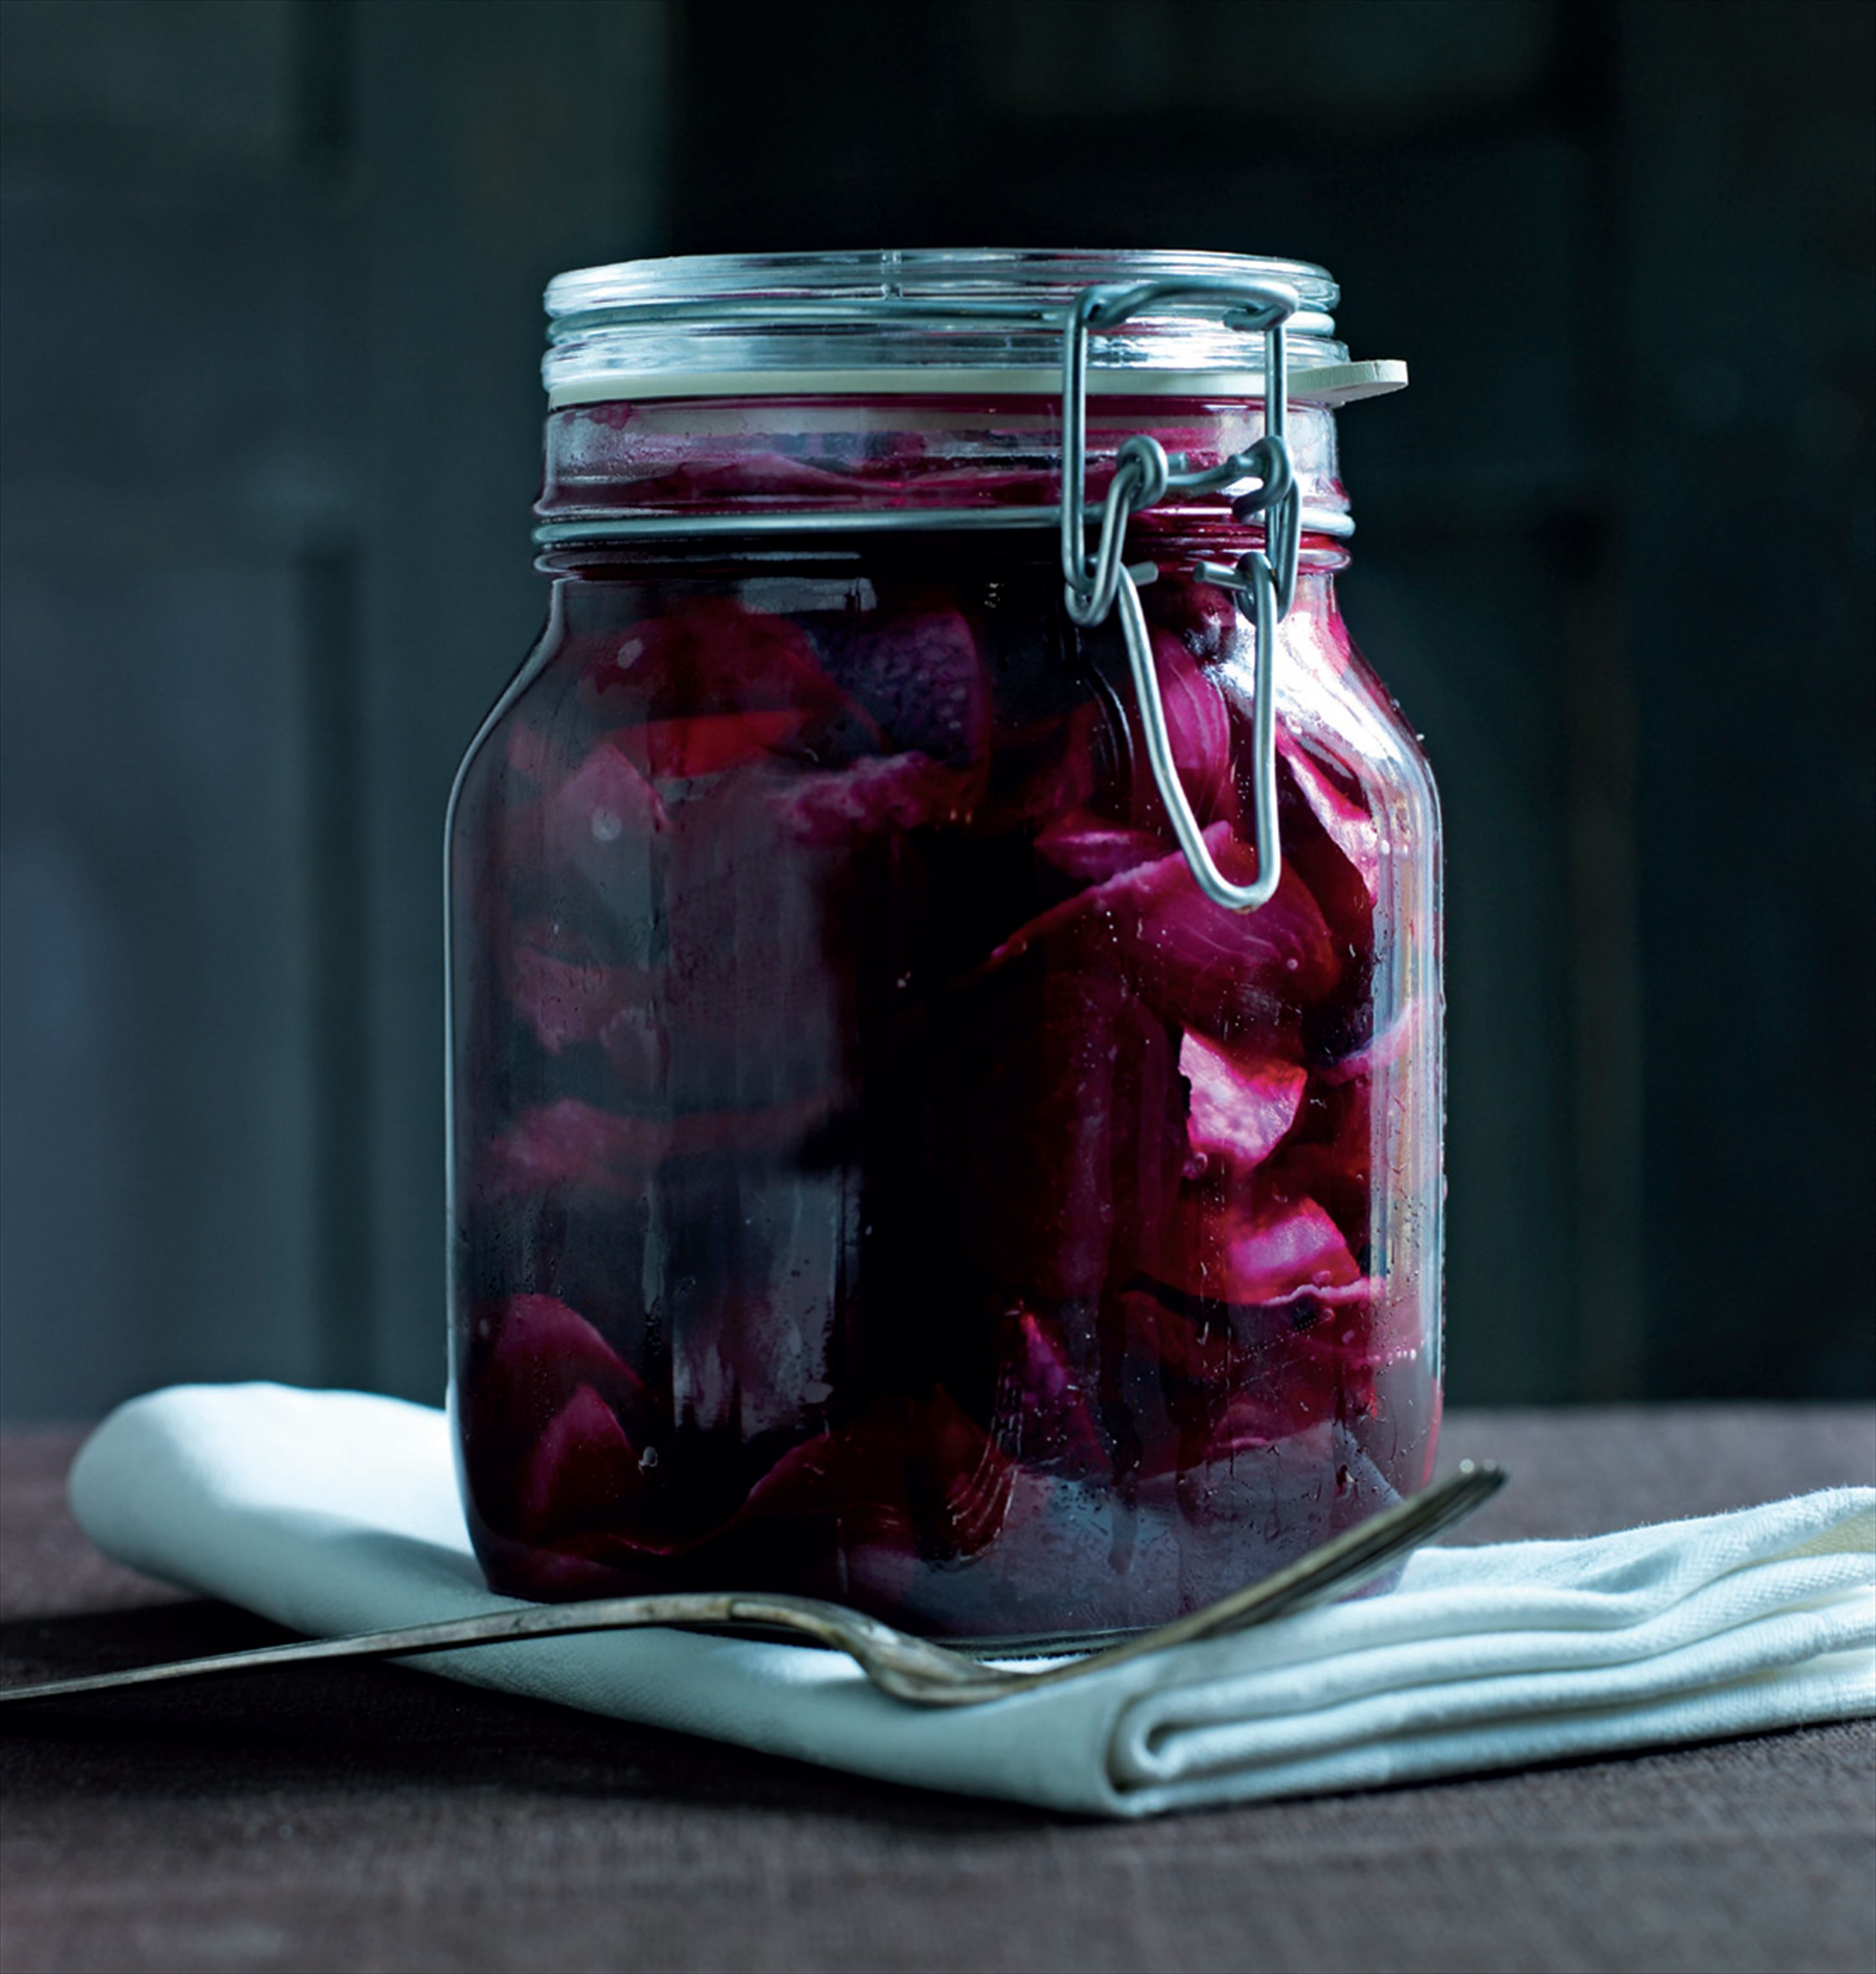 Beetroot pickled herrings